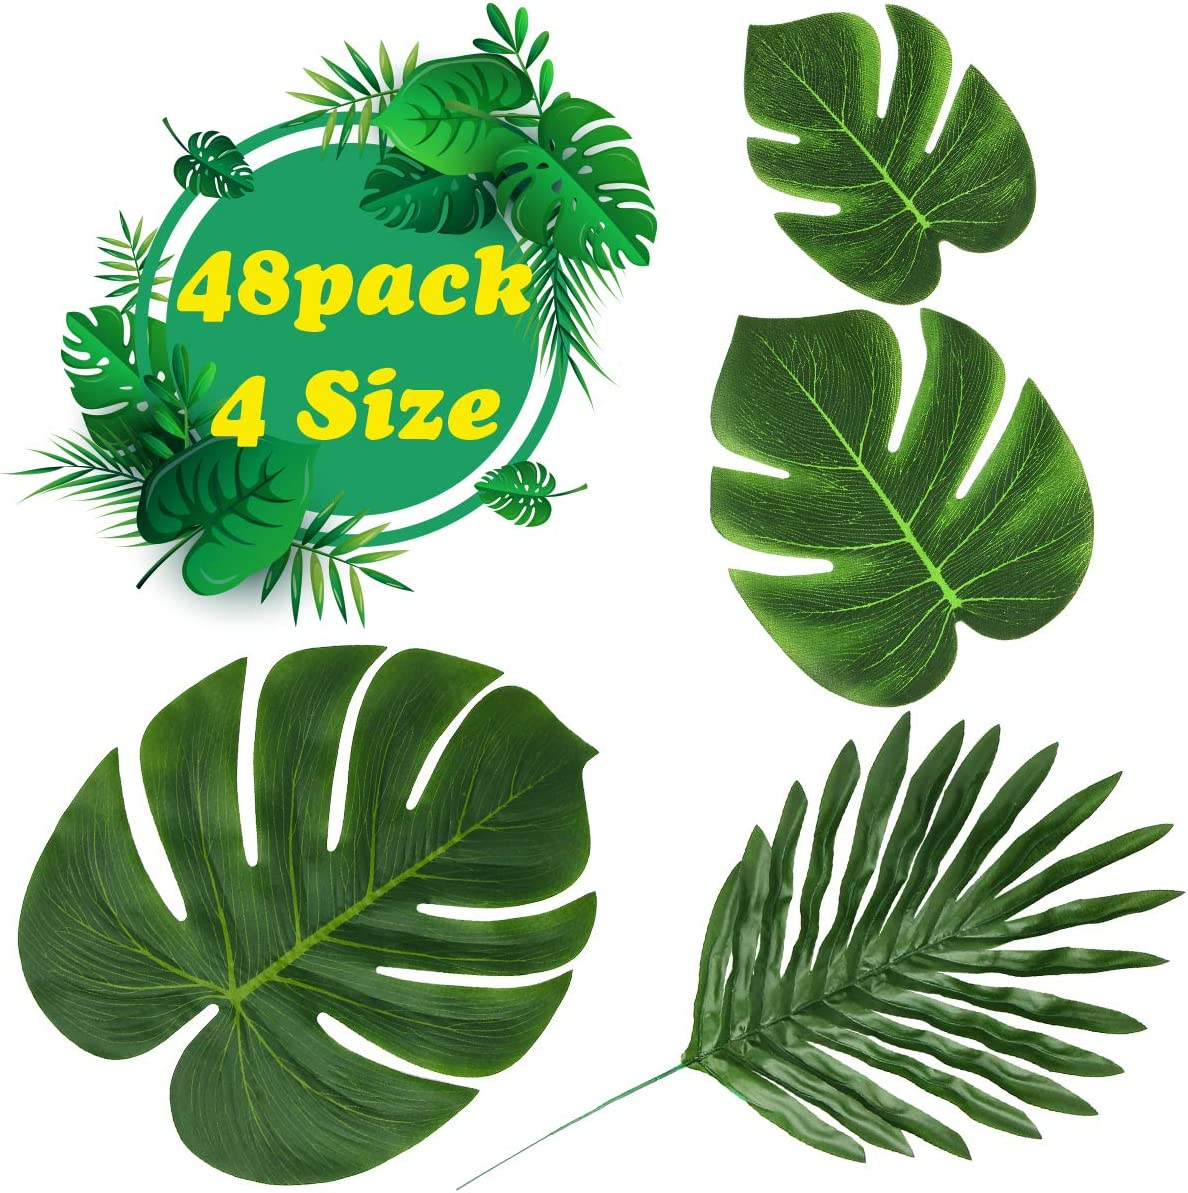 Aitey Artificial Palm Leaves, St. Patrick's Day Decoration Hawaiian Luau Party Suppliers Aloha Jungle Decorations, DIY Fake Plants for Indoor/Outdoor Beach Wedding Birthday Party Decor- 48PCS